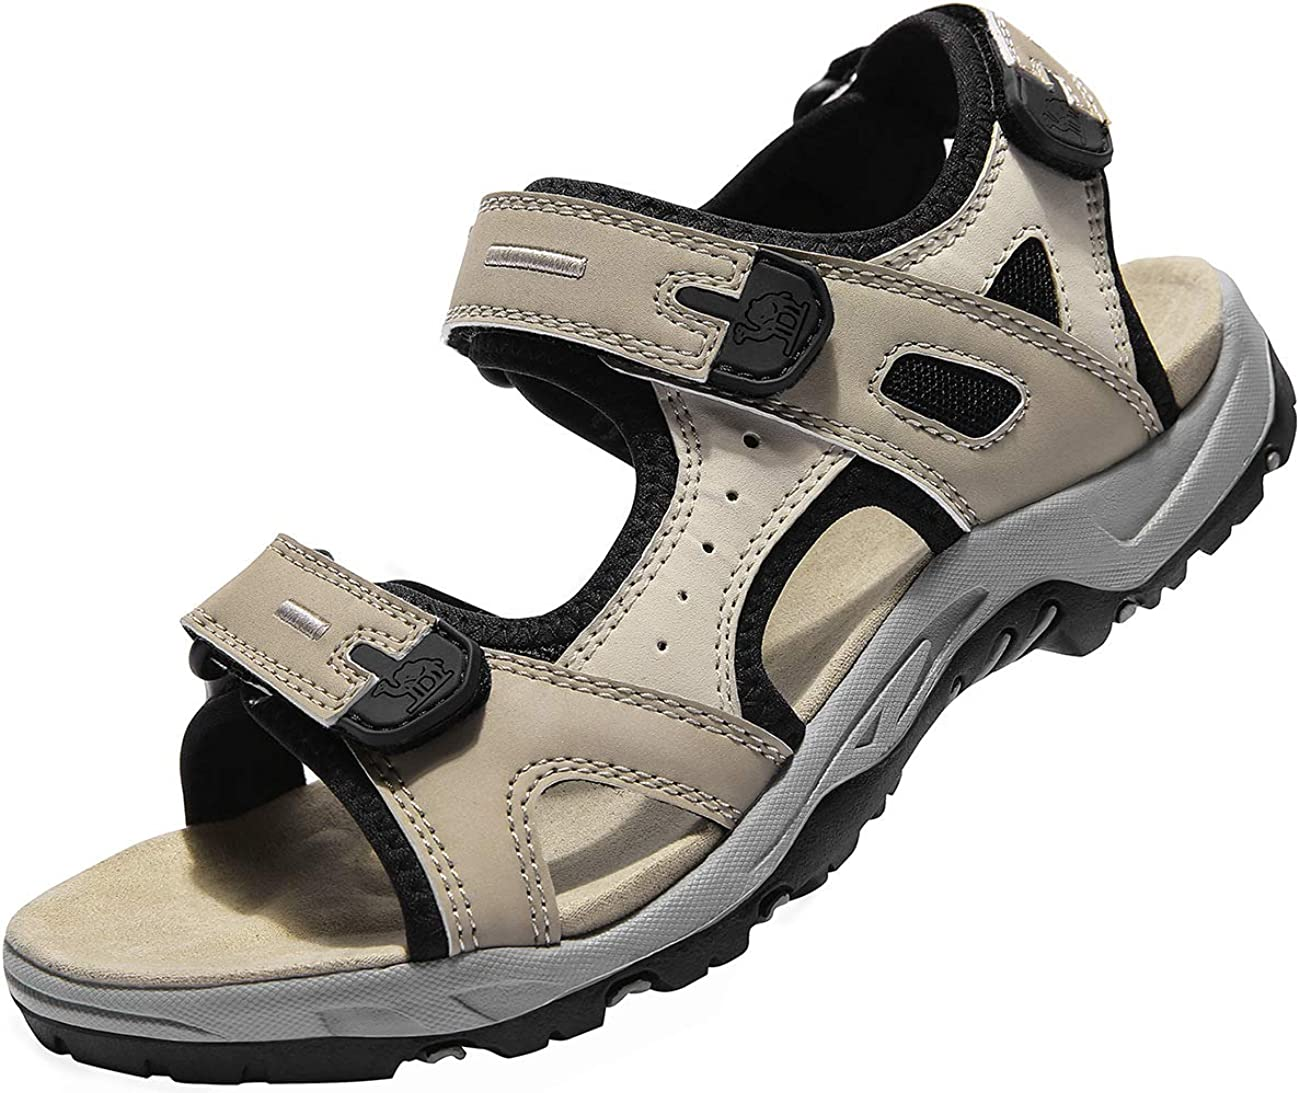 CAMEL CROWN Comfortable Outdoor Water Hiking Sandals for Women with Arch Support Open-Toe Waterproof Women Sport Beach Sandals